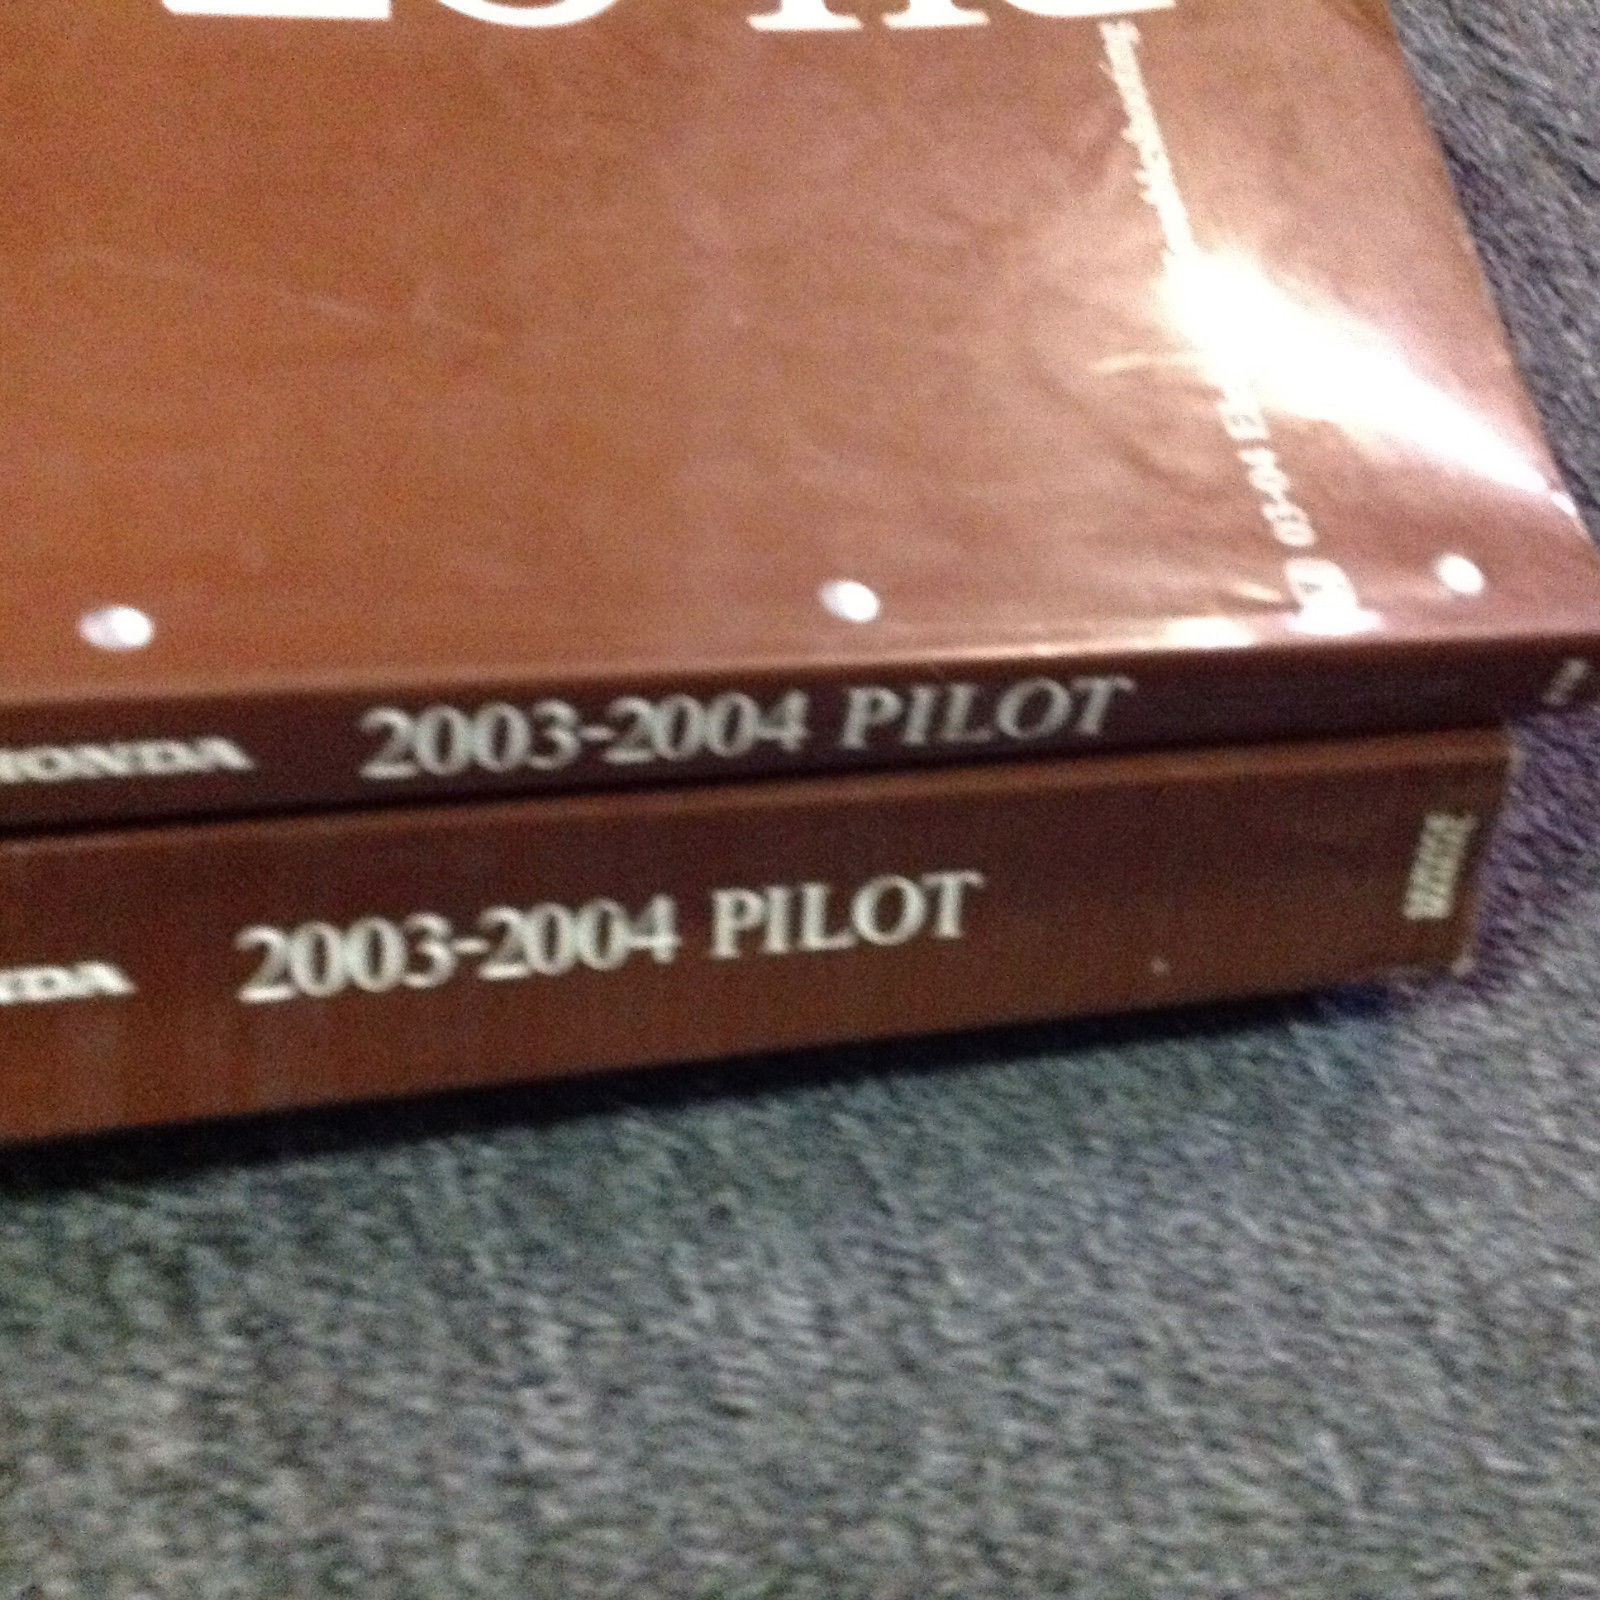 ... 2003 2004 HONDA PILOT Service Repair Shop Workshop Manual Set W EWD OEM  Factory